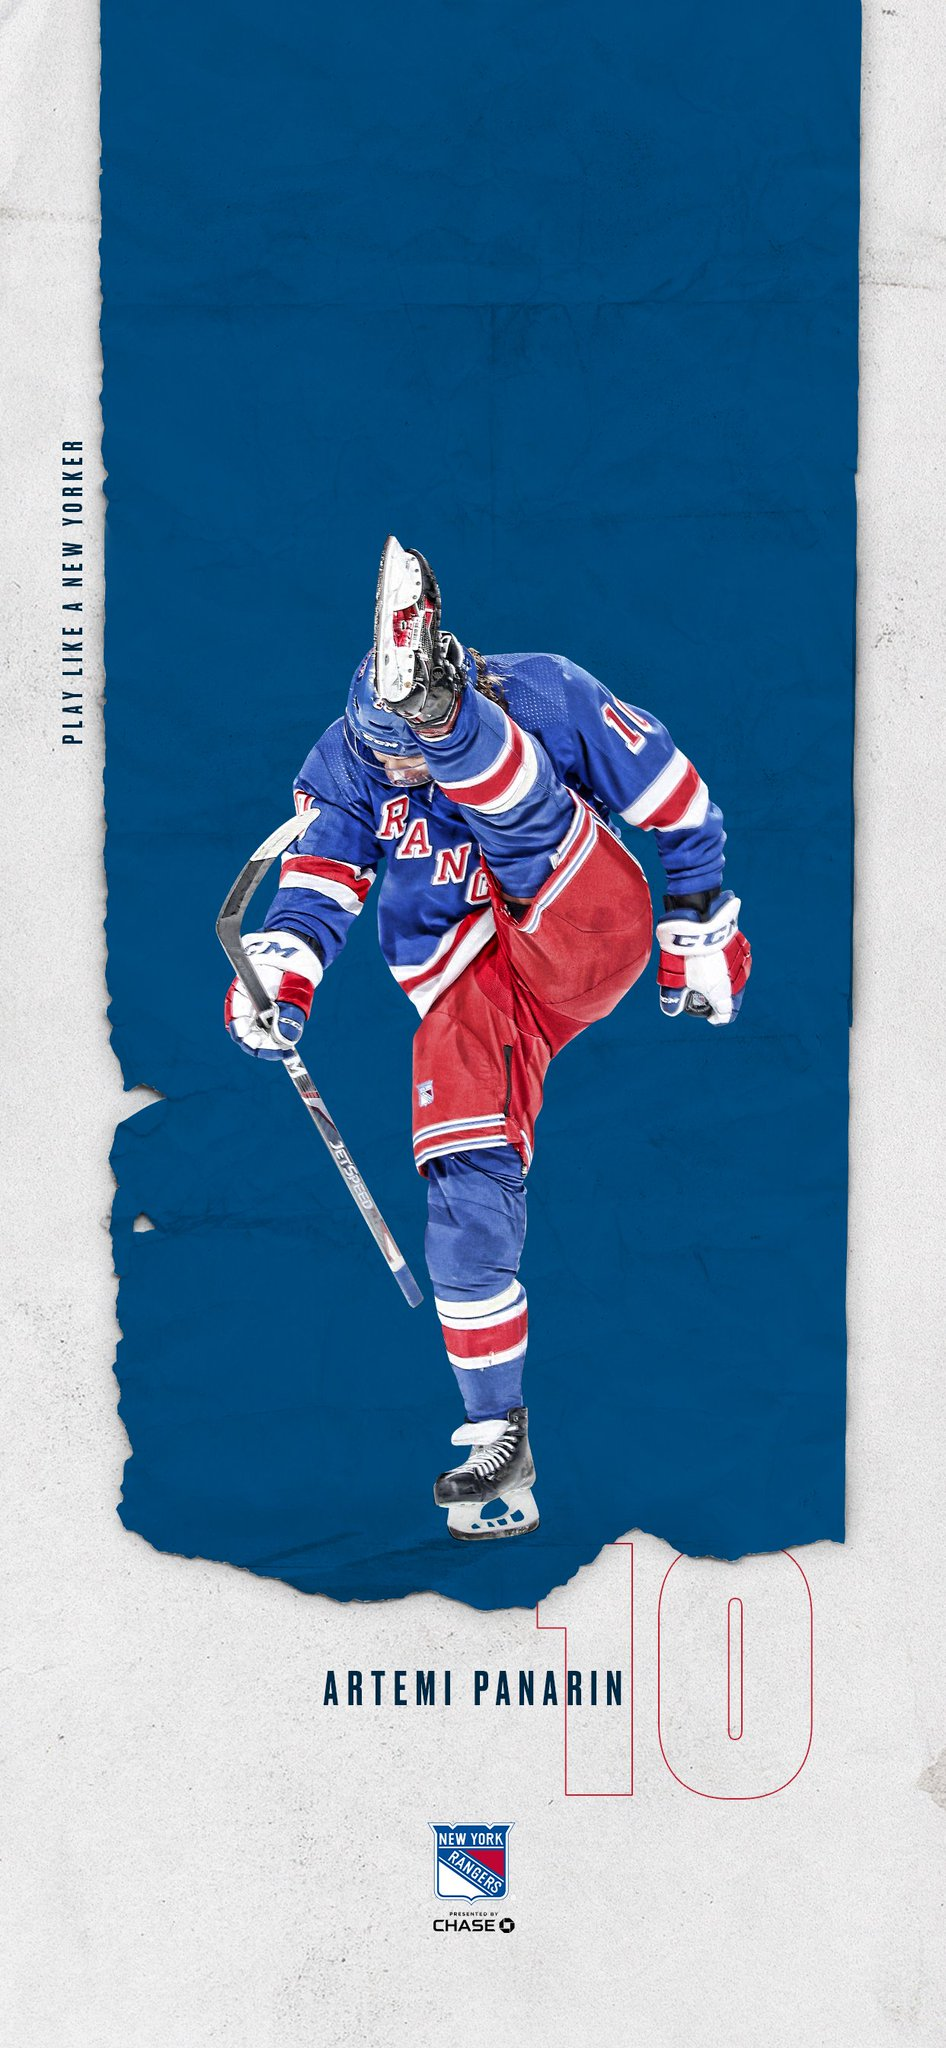 New York Rangers On Twitter It S A Great Day For New Wallpapers